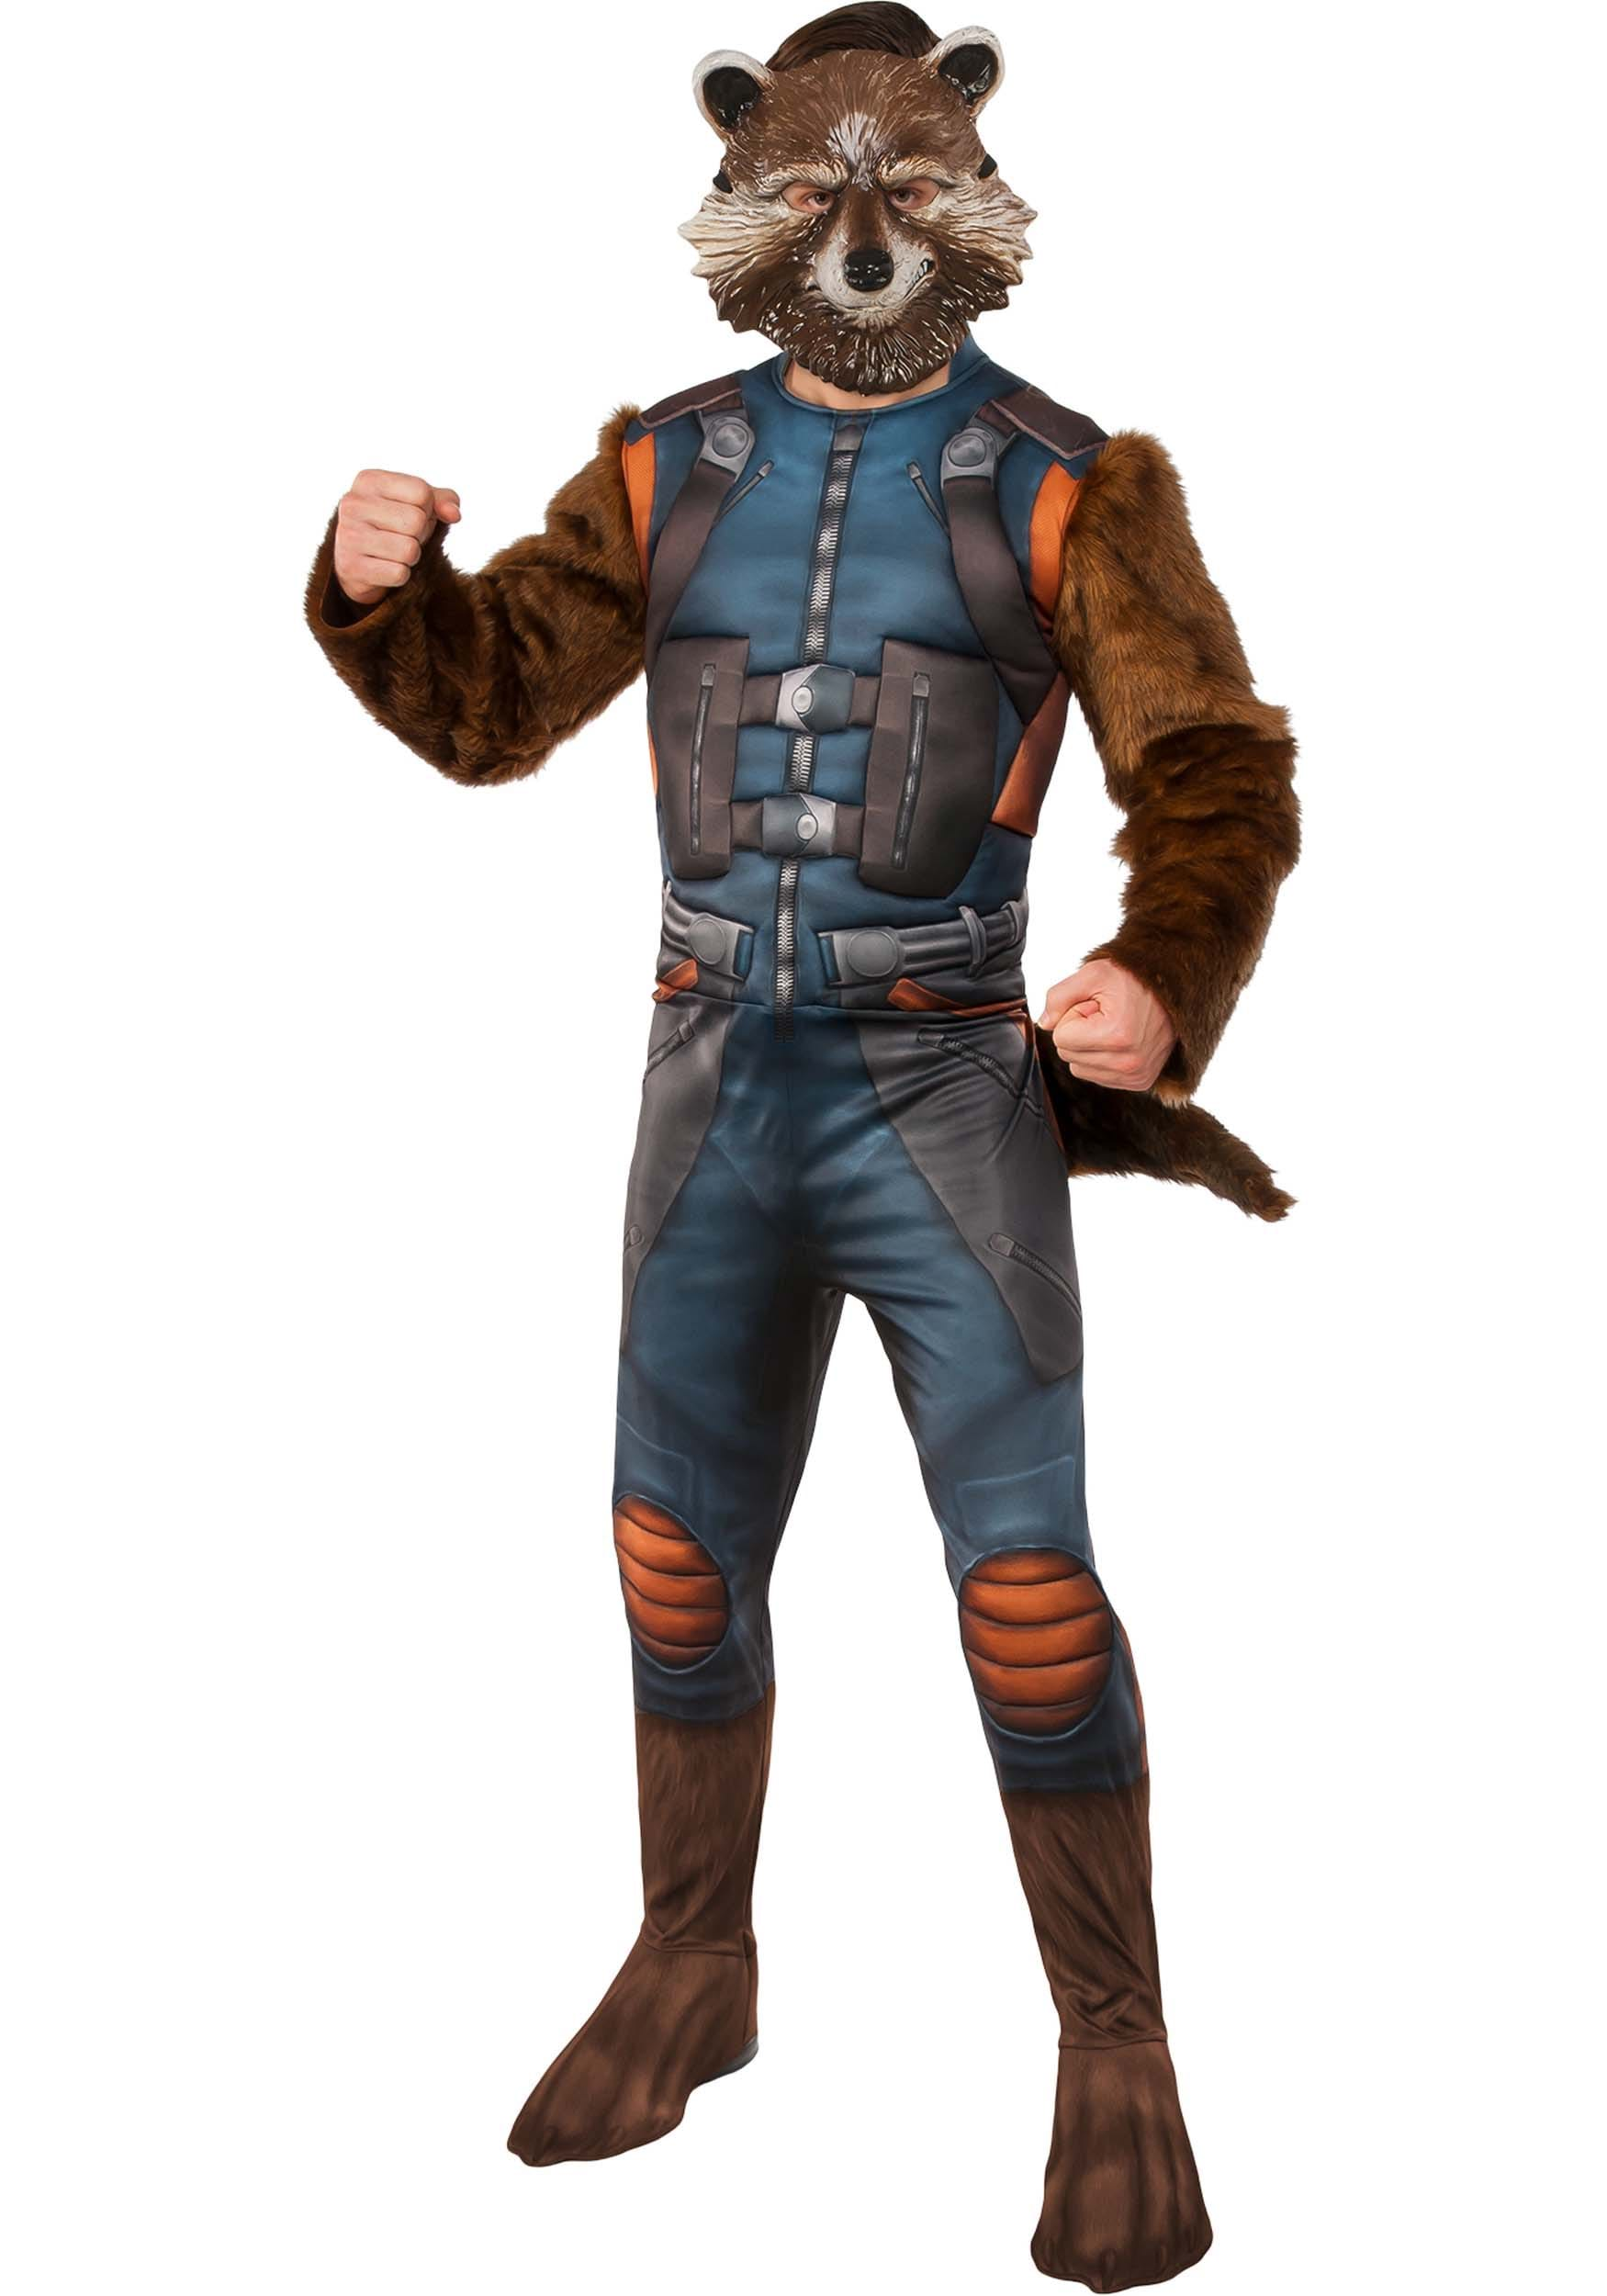 Adult Deluxe Rocket Raccoon Costume from Guardians of the Galaxy